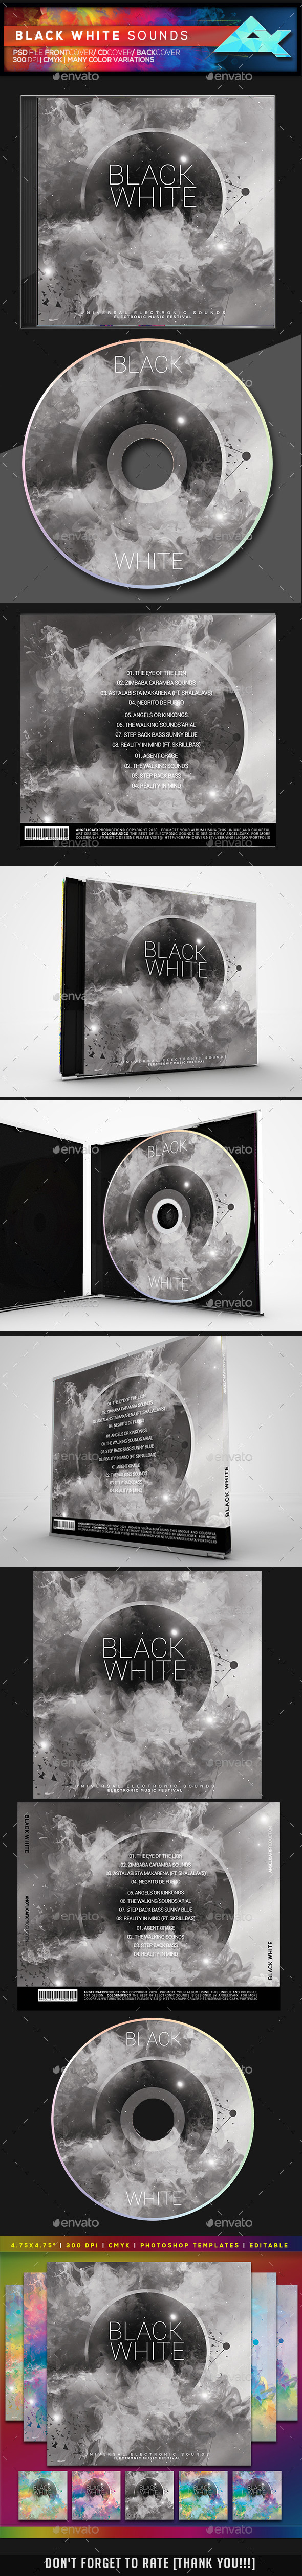 Black White Sounds CD/DVD Photoshop Template - Flyers Print Templates